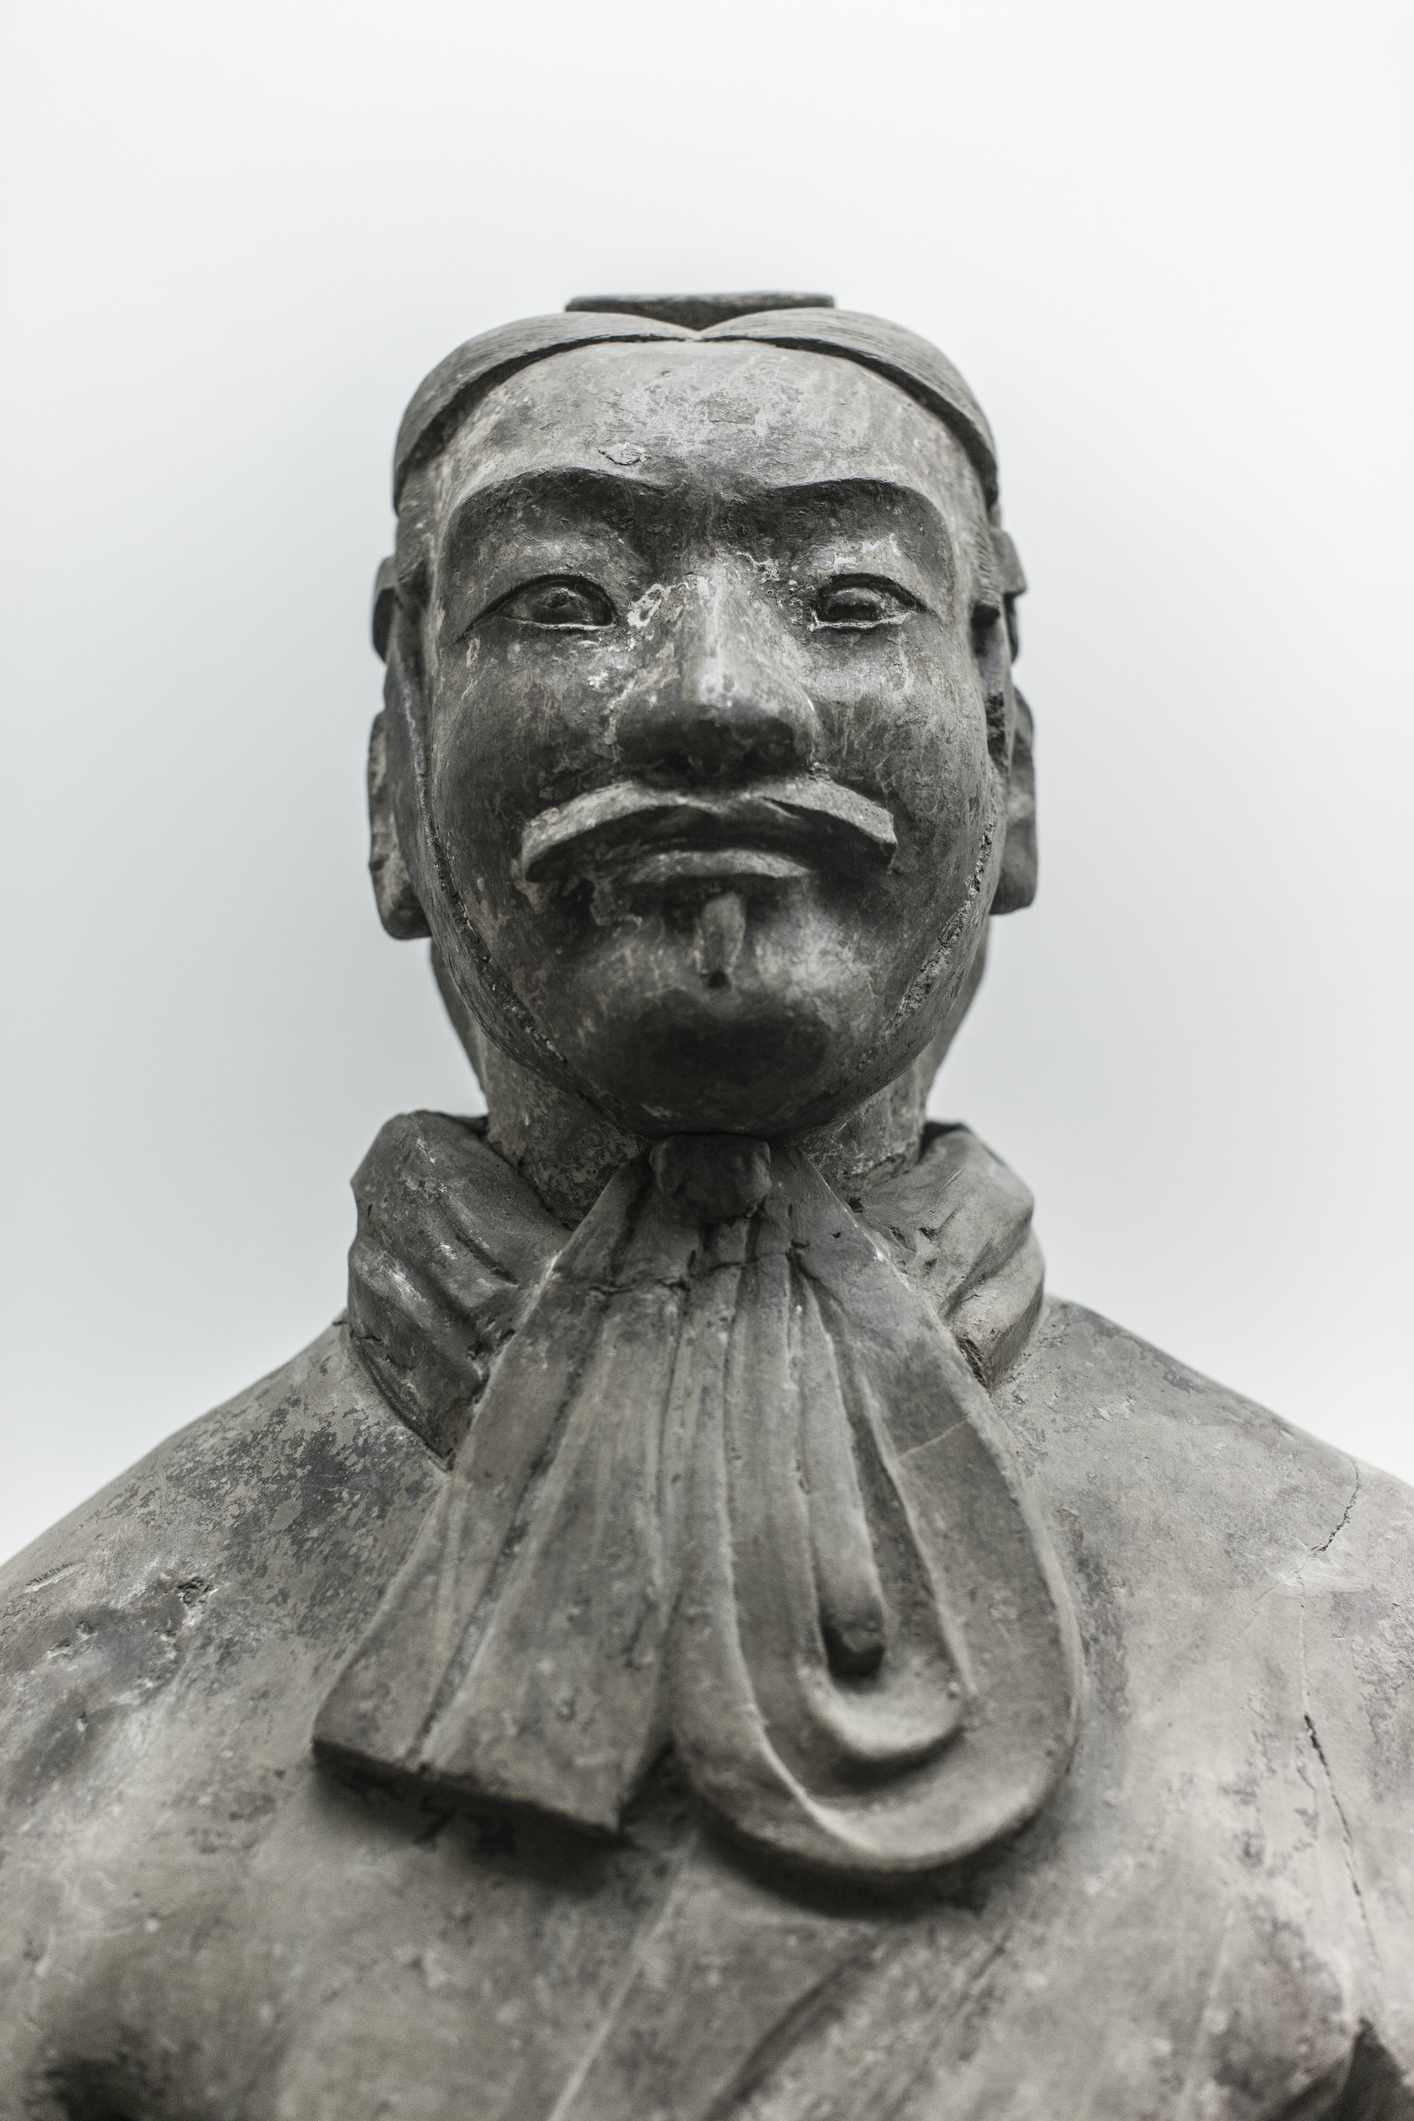 Close up of a terracotta warrior's head